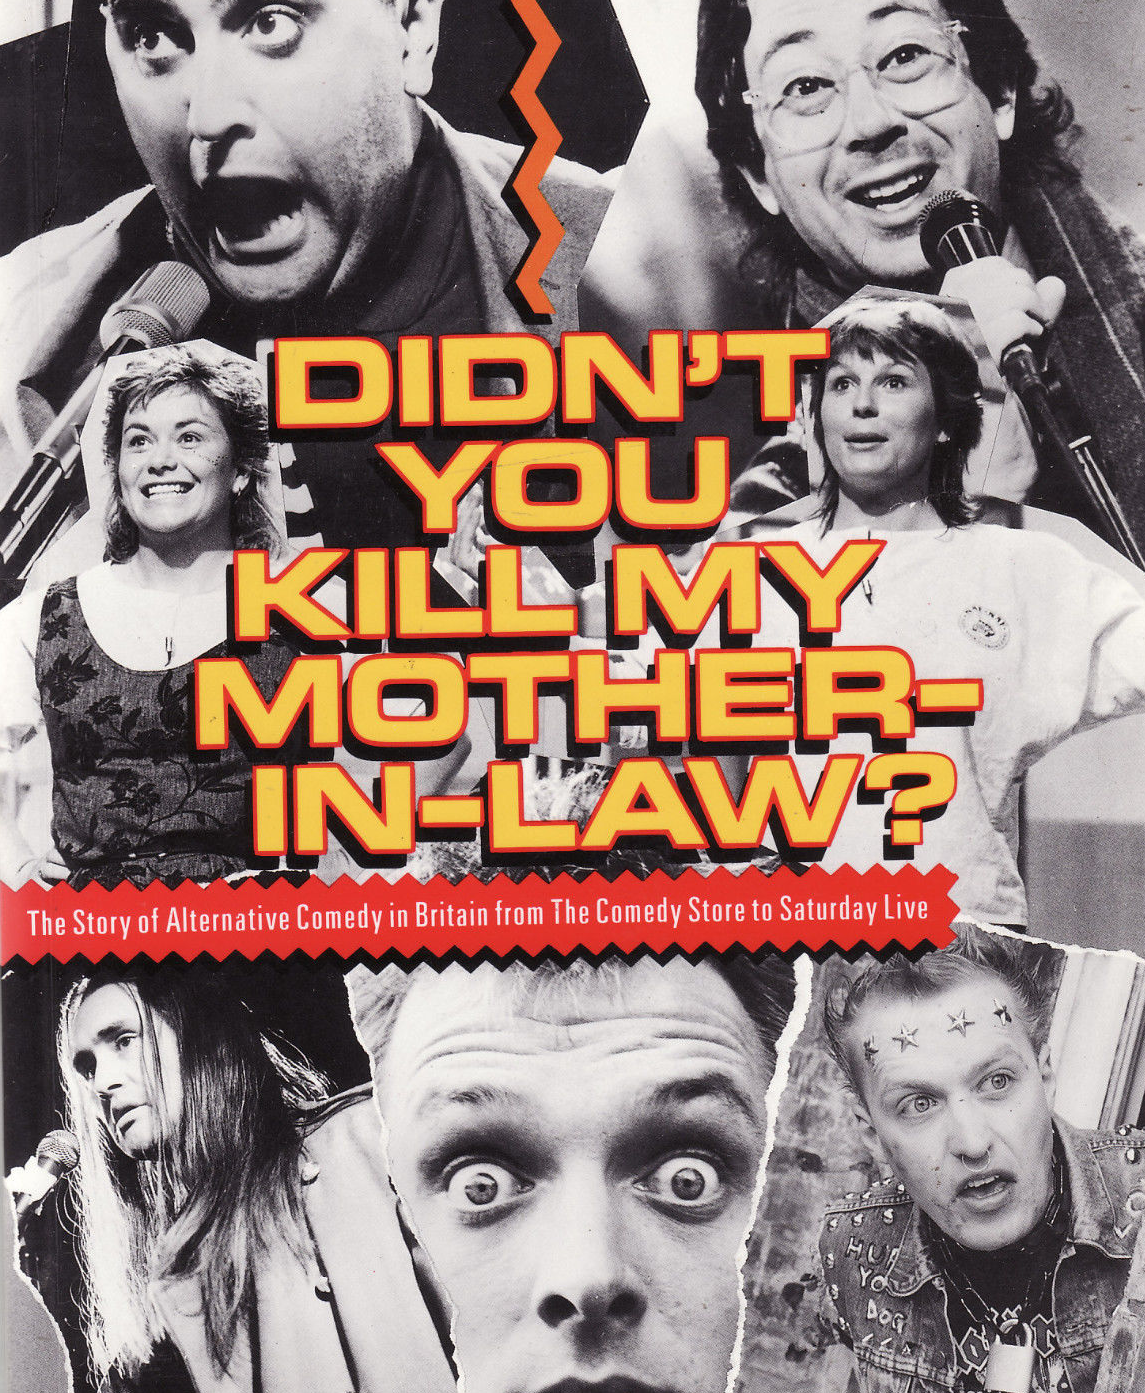 Didn't You Kill My Mother-In-Law? by Roger Wilmut (Methuen, 1989).